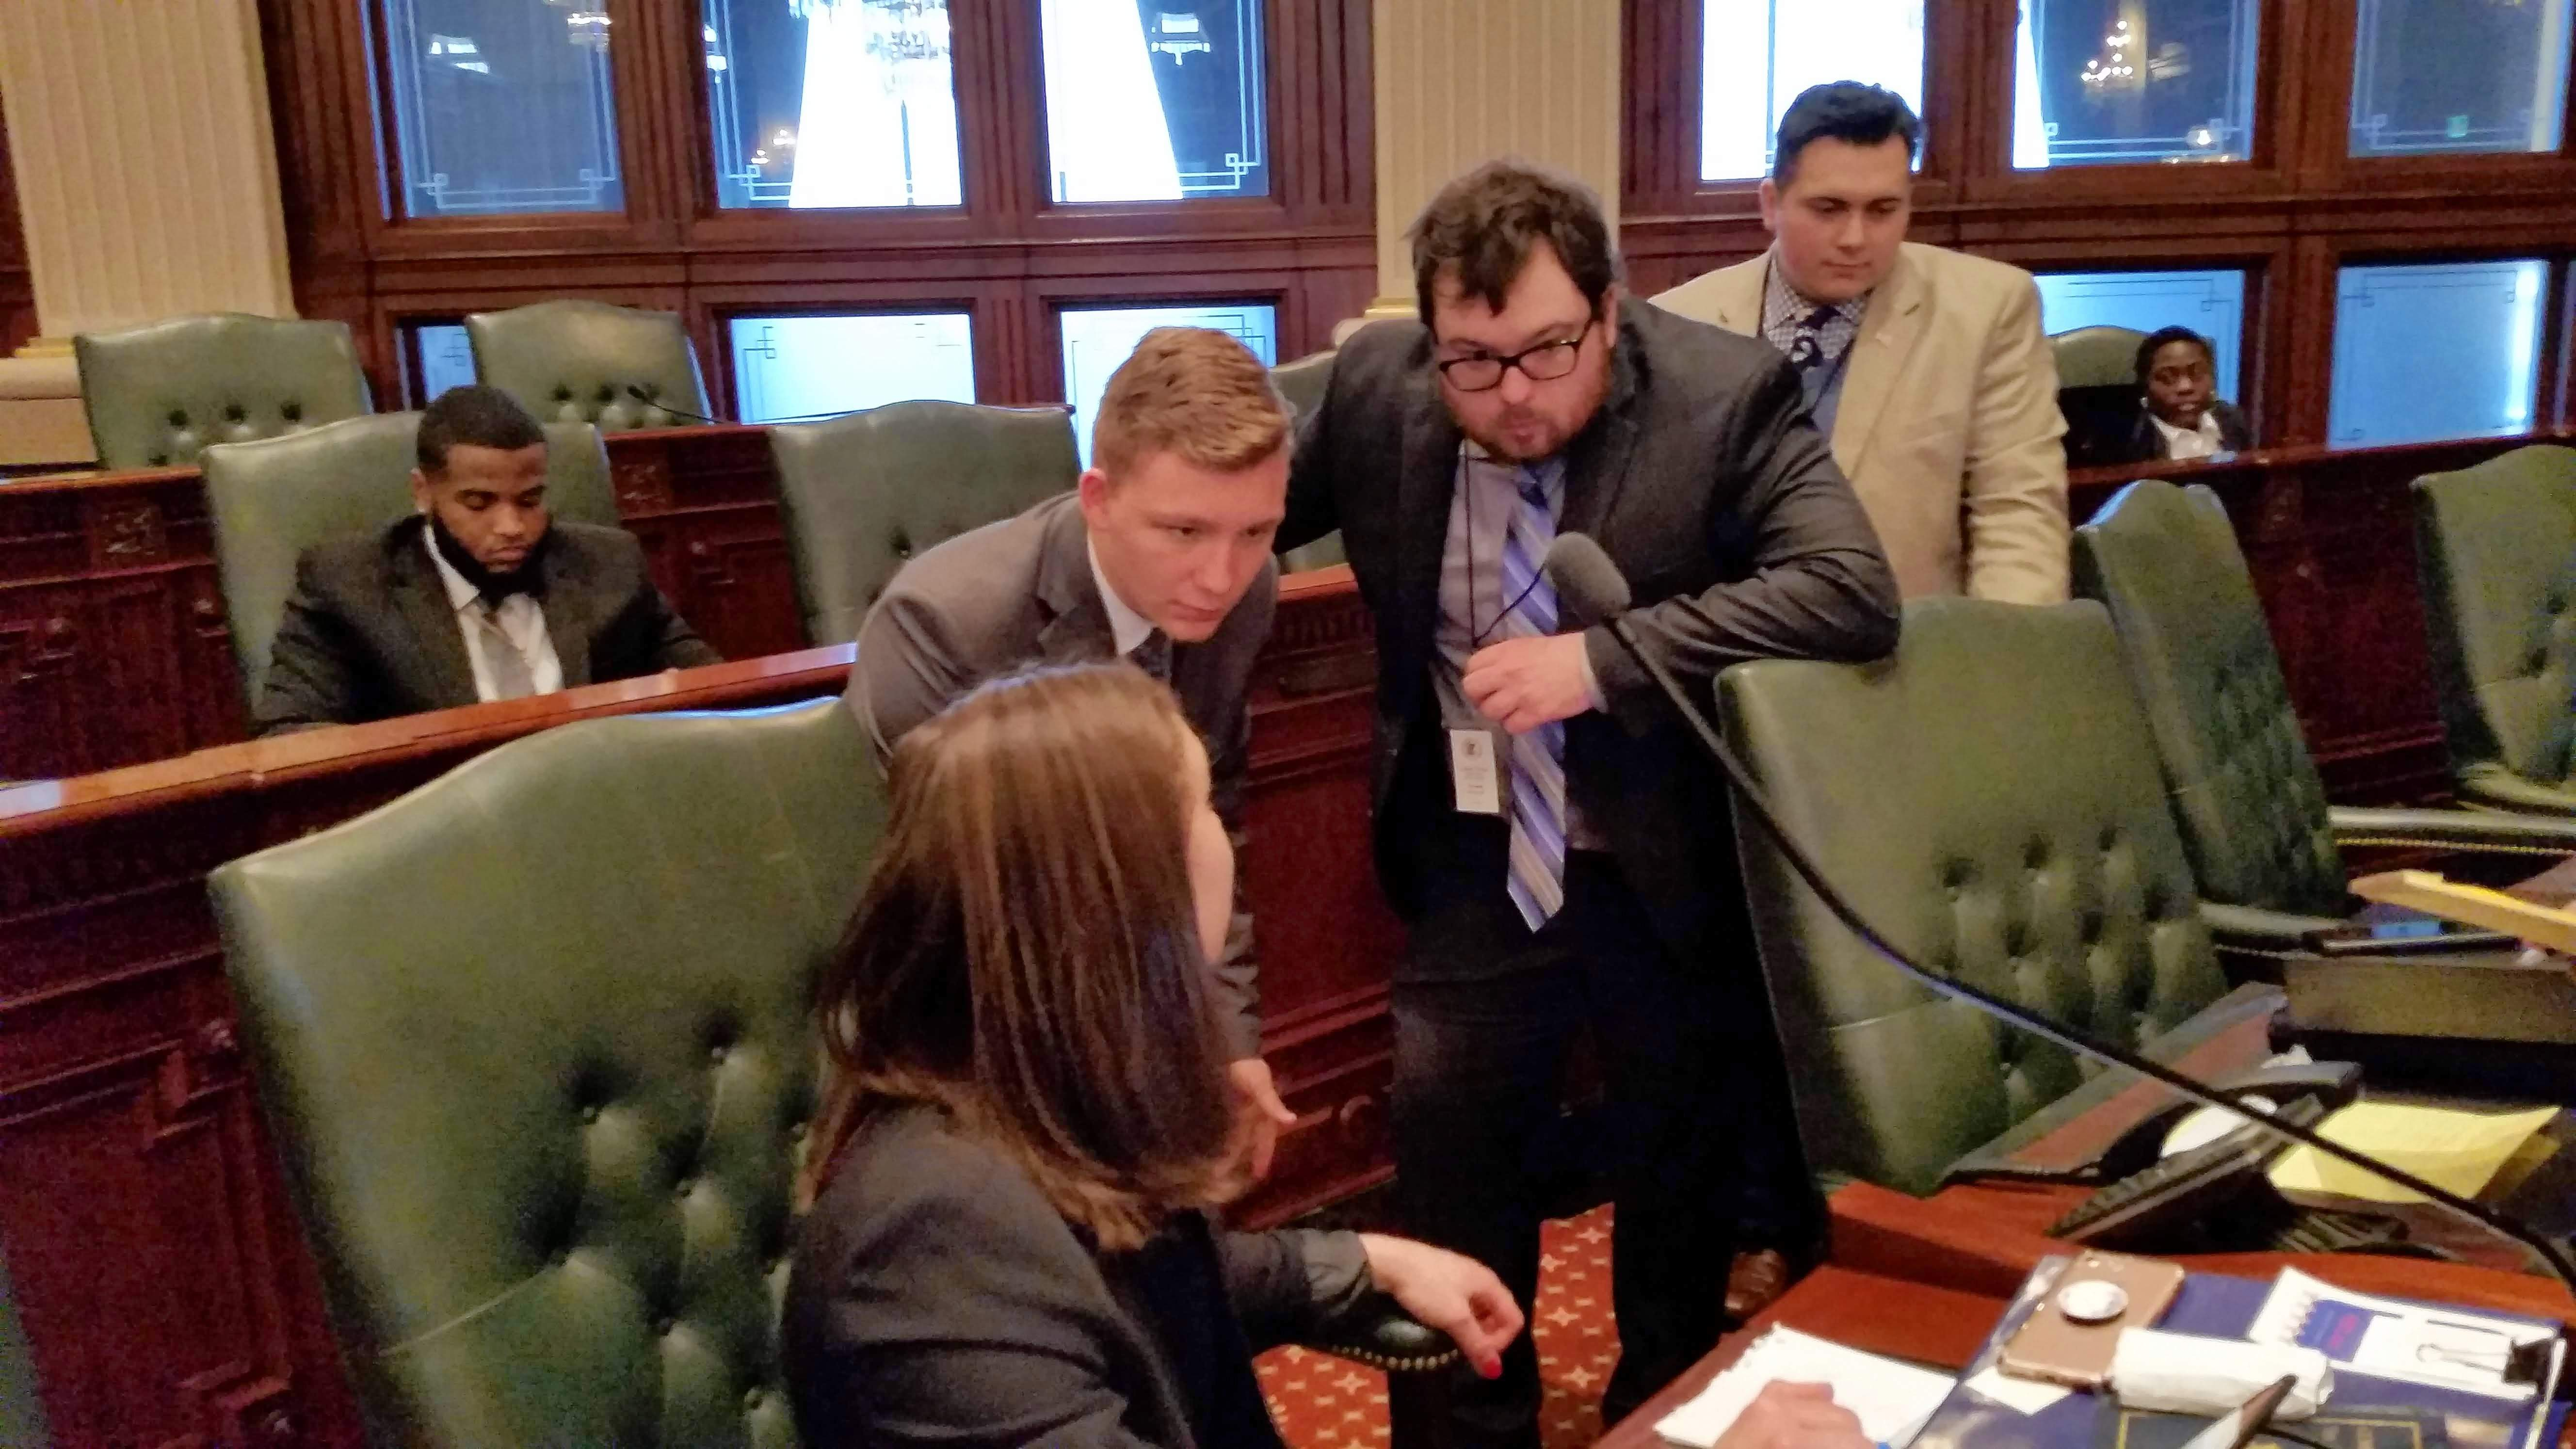 Assistant house majority leader Caleb Weiss (third from left) and whip Christian Lane (second from left) caucusing with leadership on the House Floor.